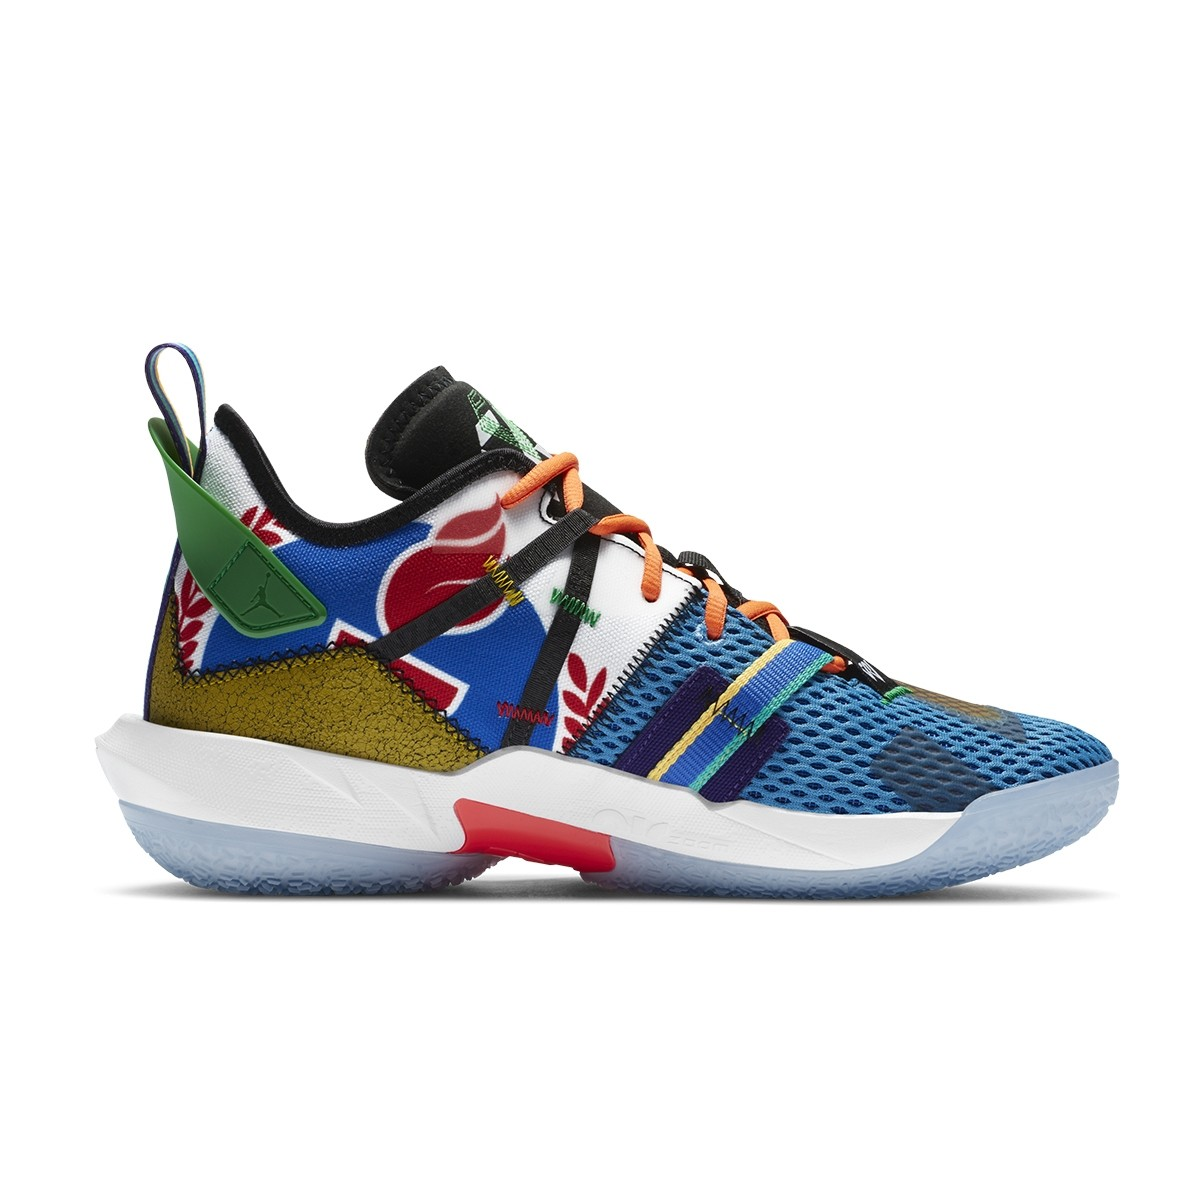 Jordan Why Not Zer0.4 'Playstyle'